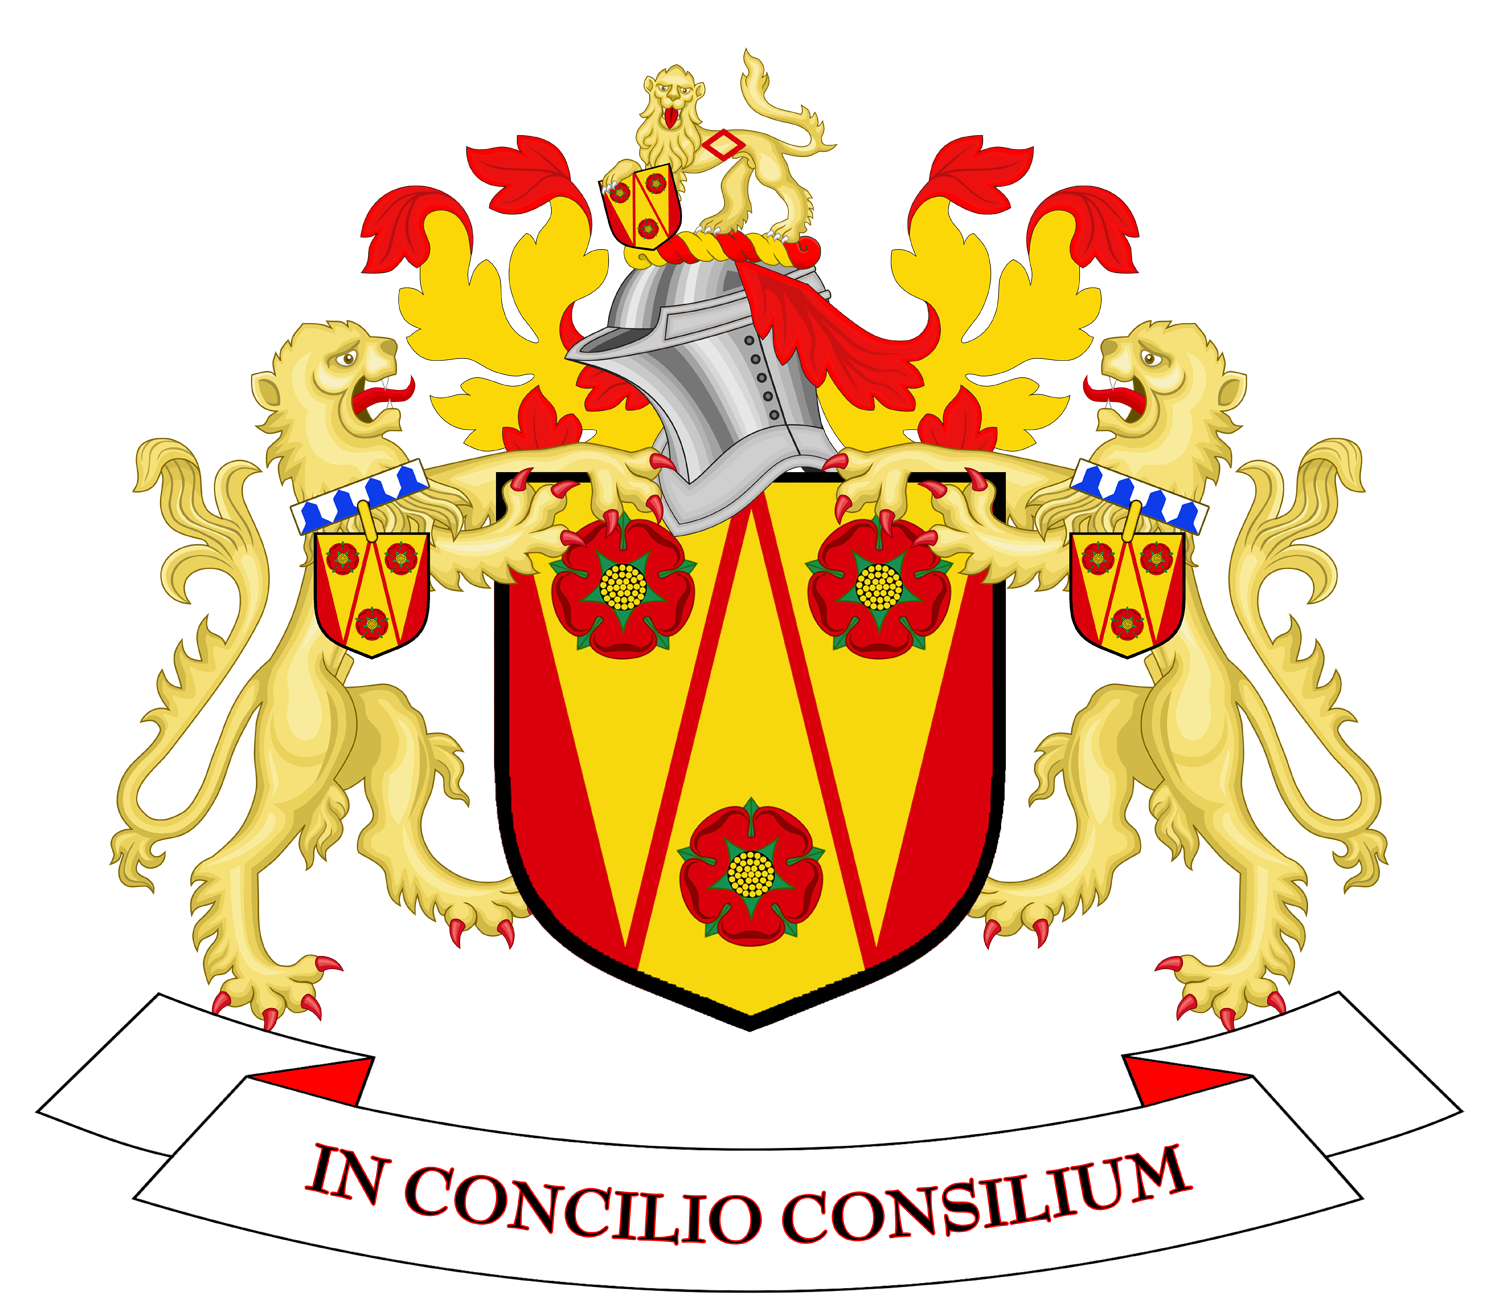 File:Coat of arms of Lancashire County Council.png - Wikimedia Commons